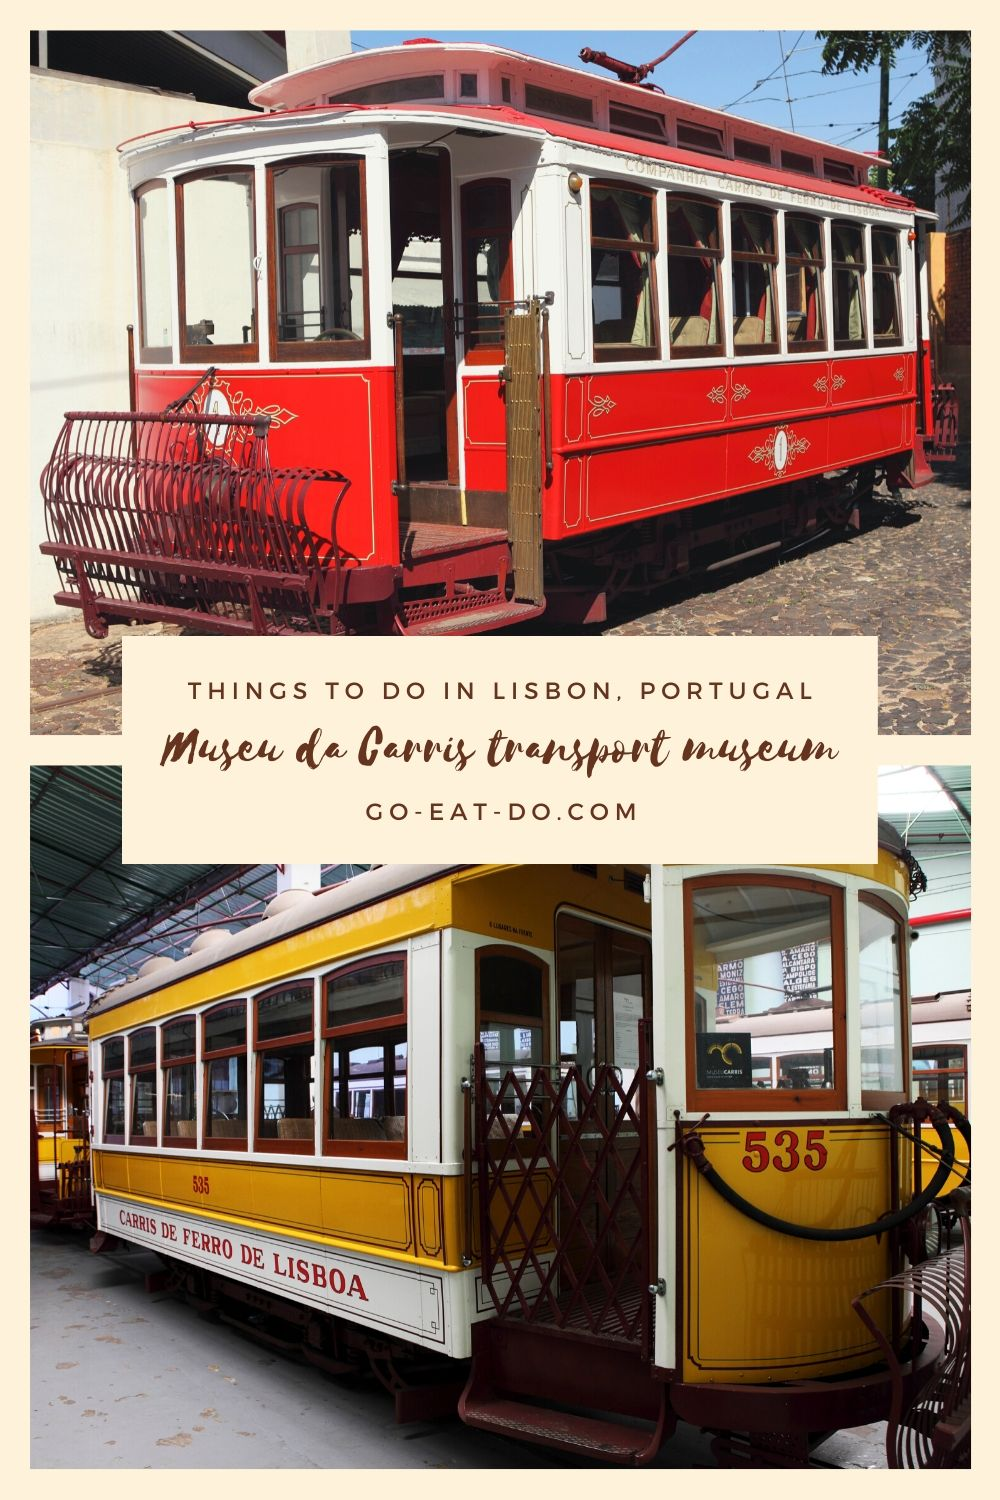 Pinterest pin for the Go Eat Do's blog post about the Museu da Carris transport museum in Lisbon, Portugal